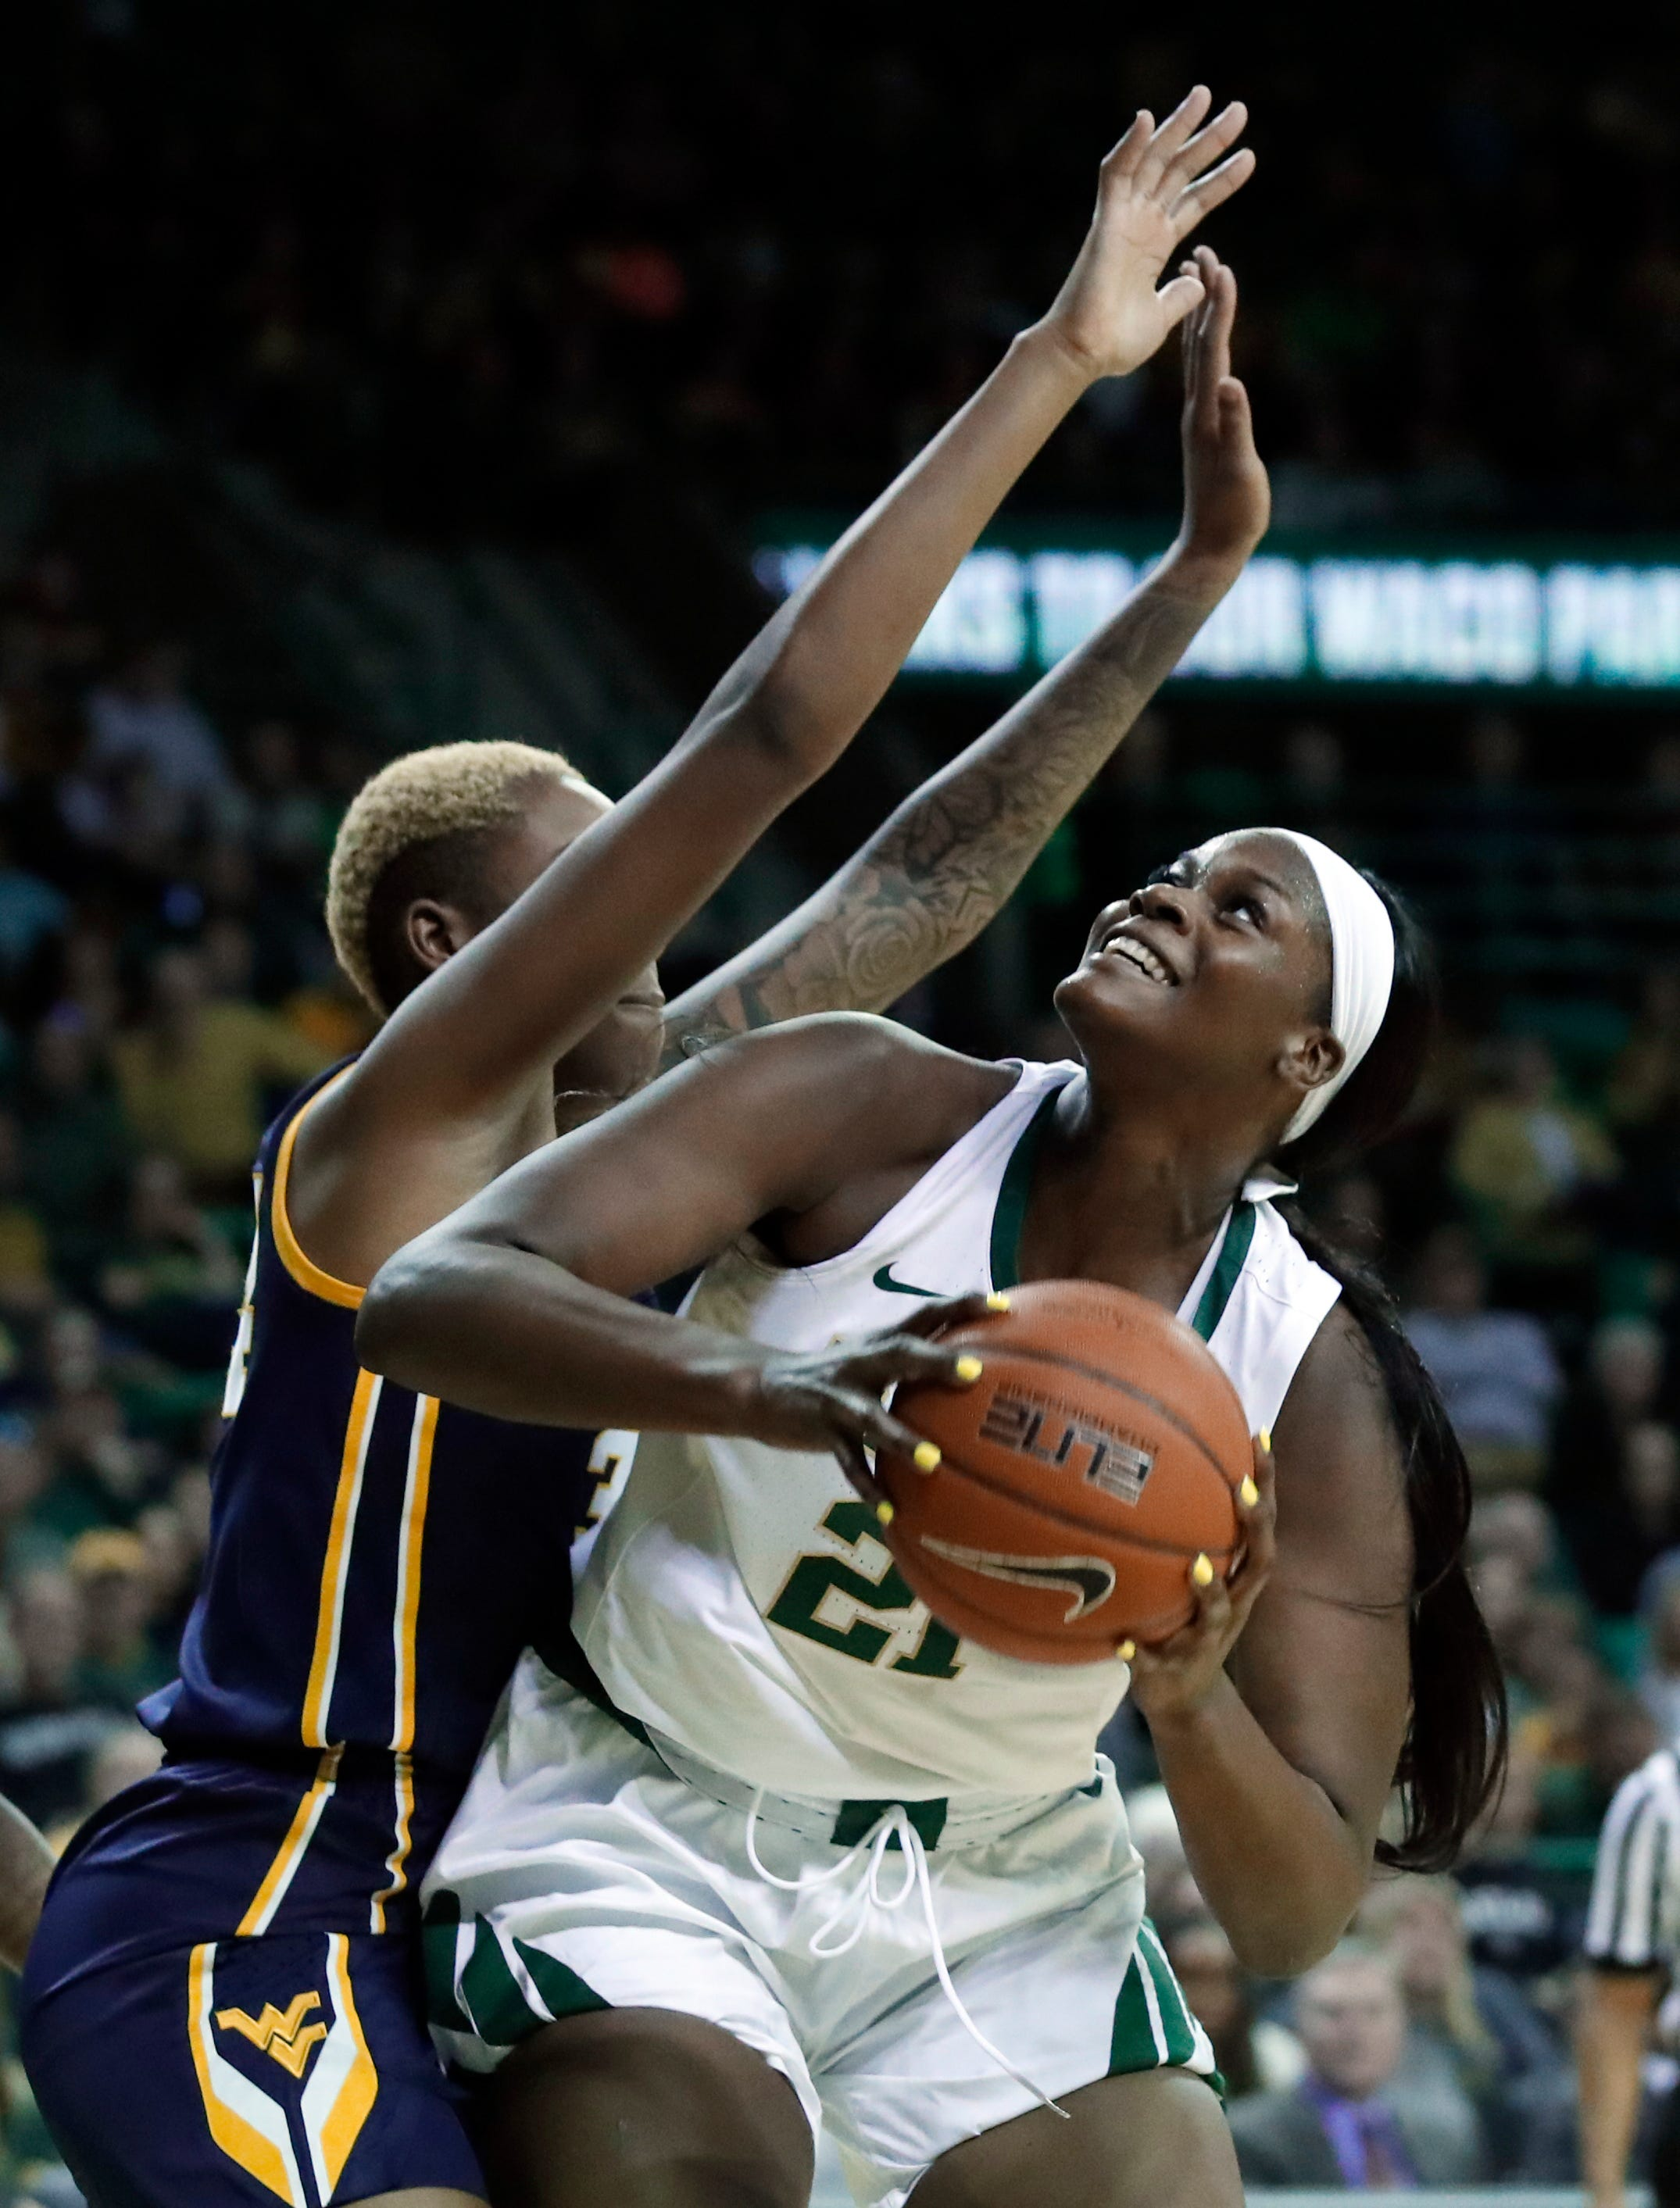 Brown leads as No. 2 Baylor women roll past W Virginia 79-47